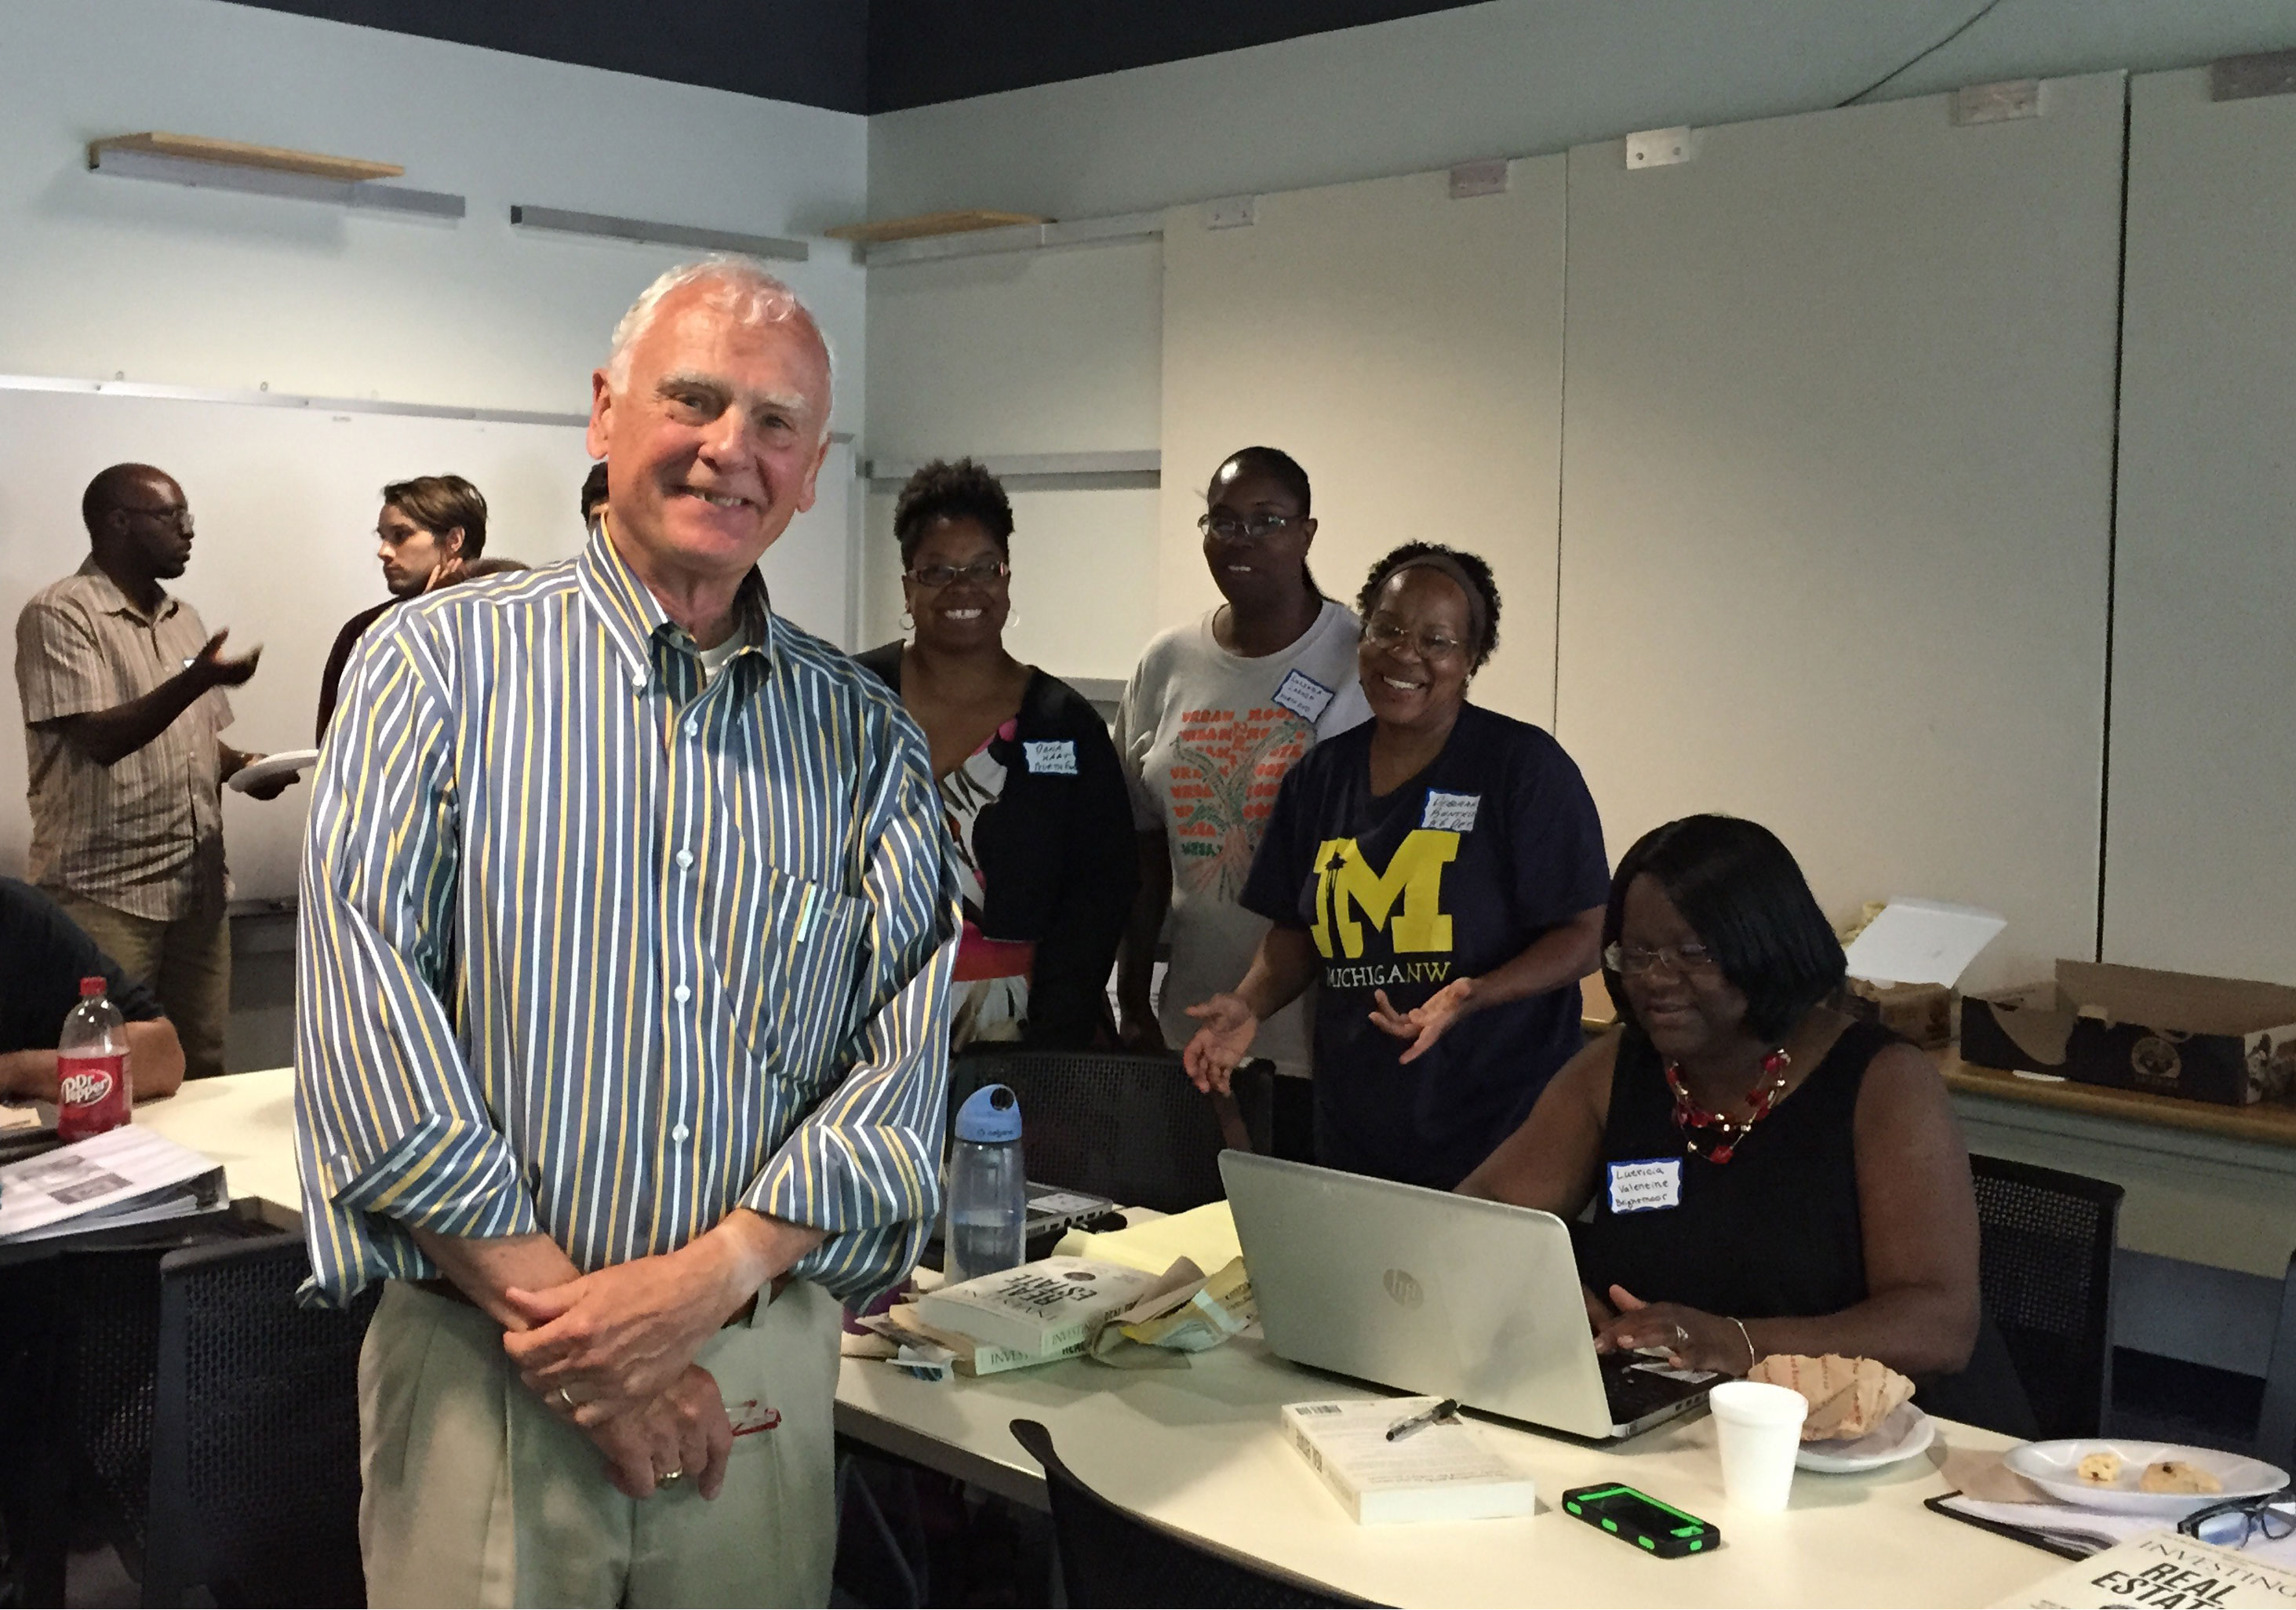 Peter Allen, an adjunct lecturer at U-M's Ross School of Business, started a summer real estate class recently at U-M's Detroit Center to 18 students who came from all corners of the city and want to be part of Detroit's turnaround. Image credit: Greta Guest